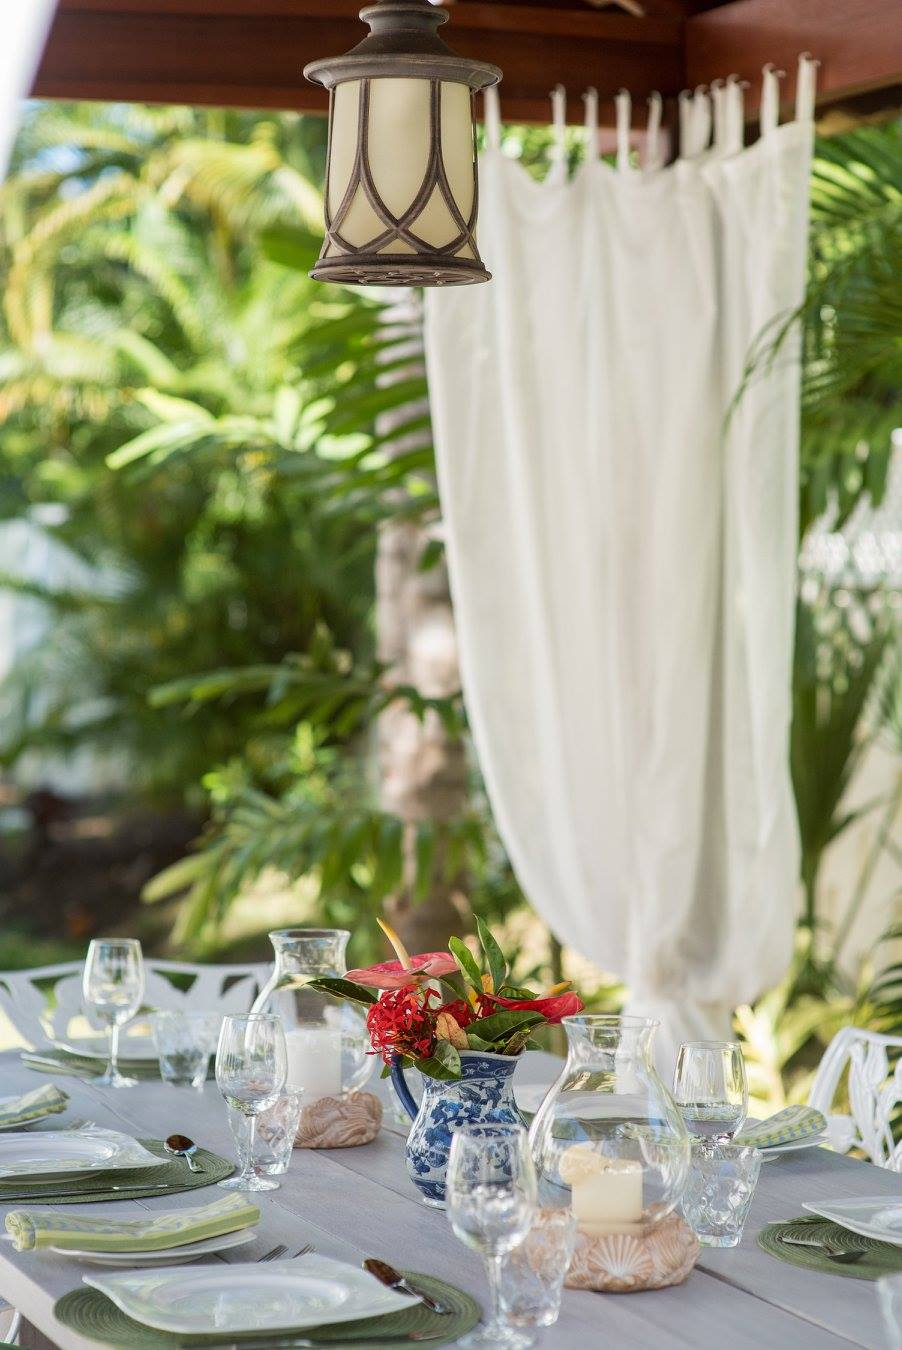 outside dining table of a villa in Barbados